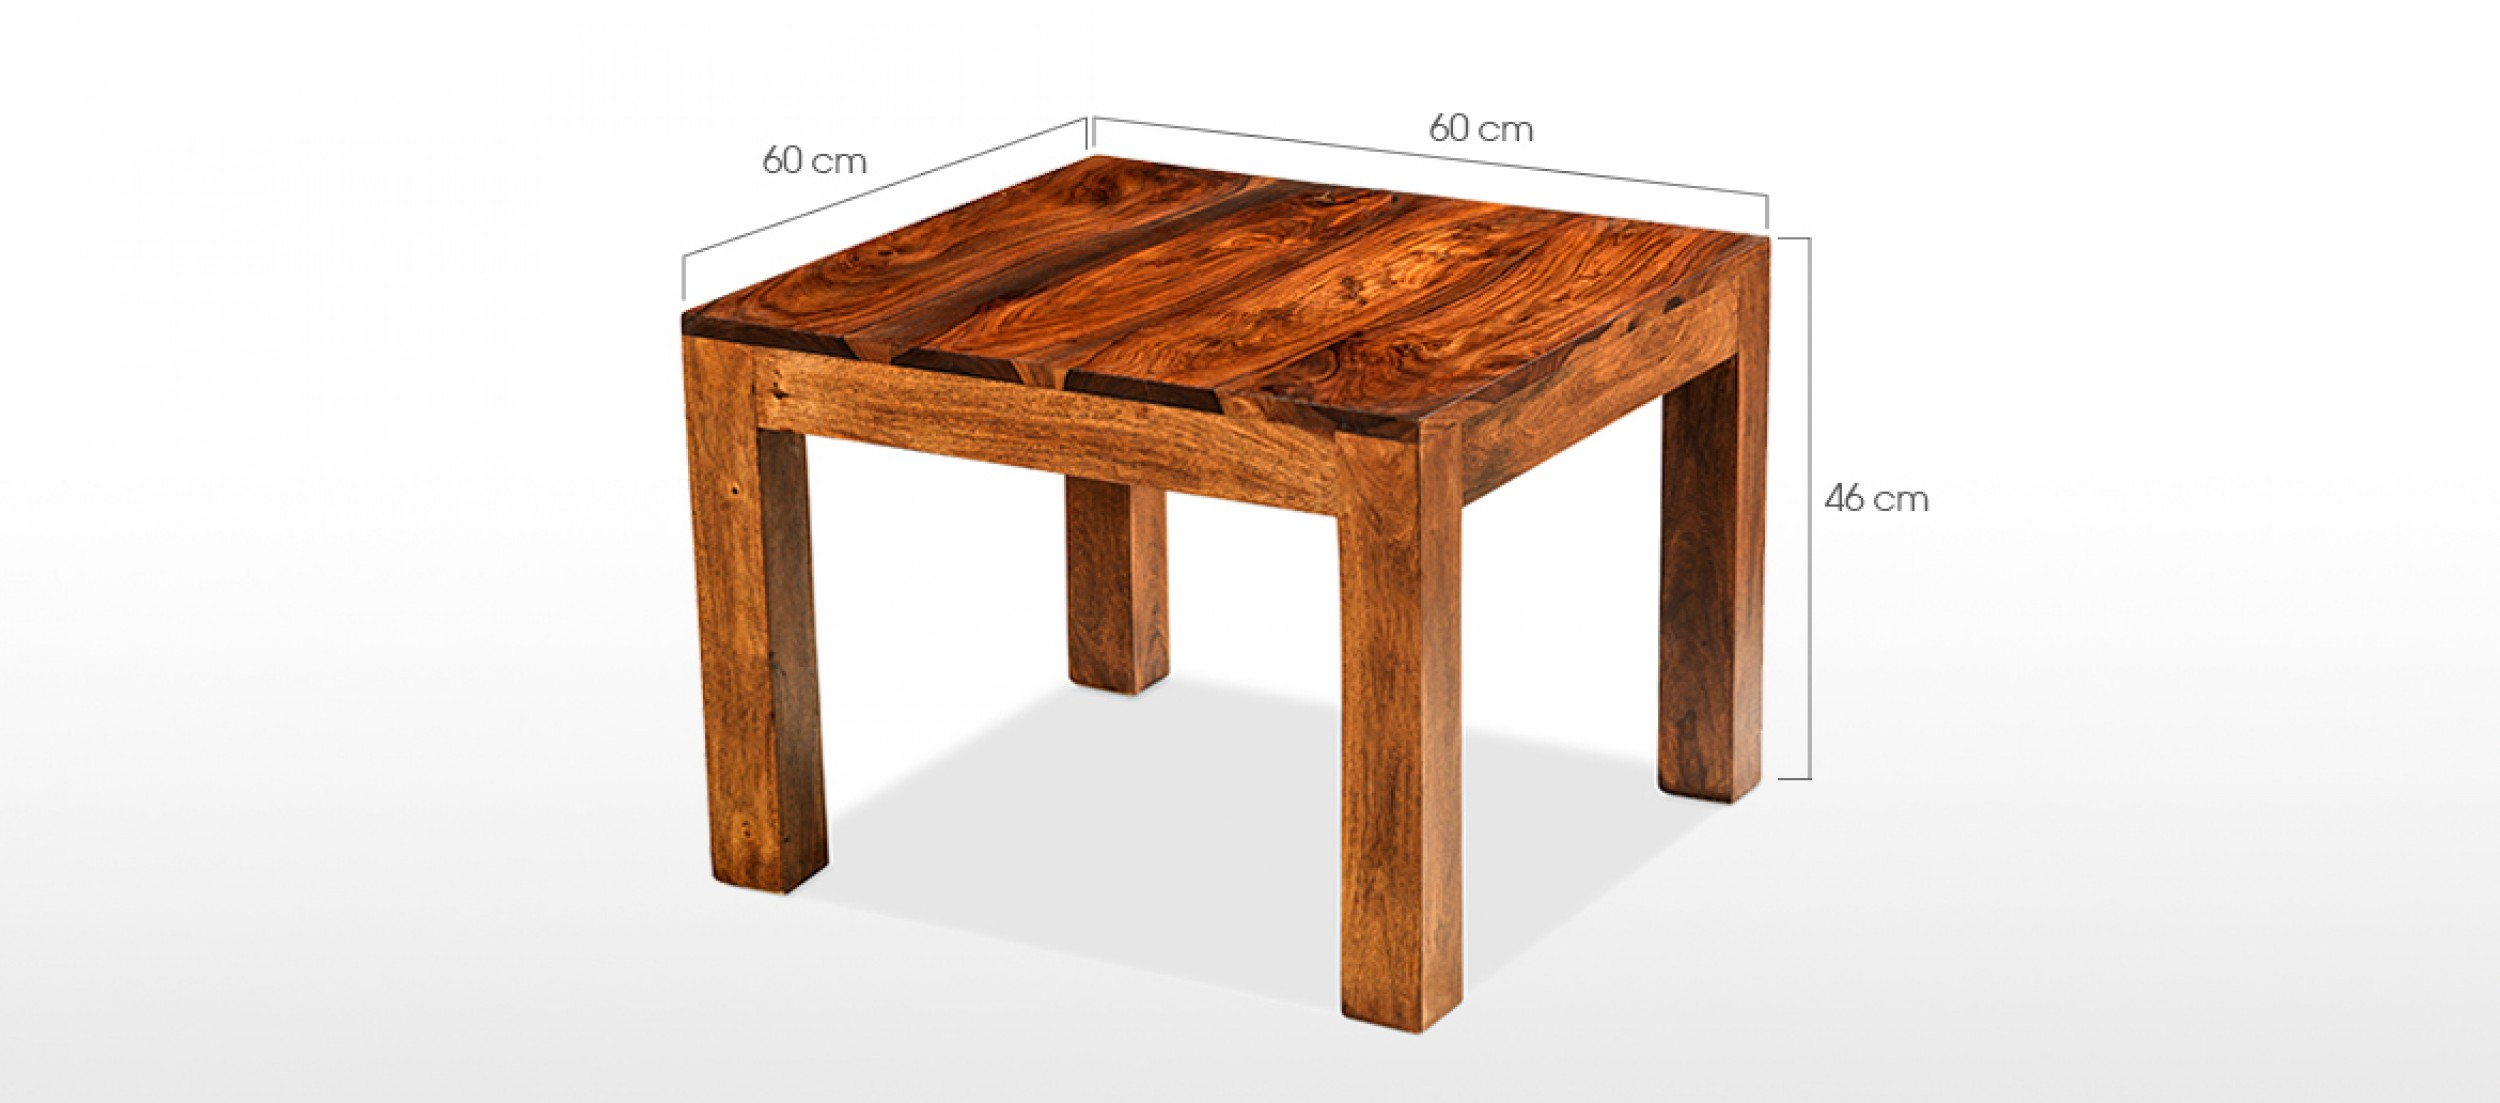 Cube sheesham 60 cm coffee table quercus living for Coffee table dimensions design